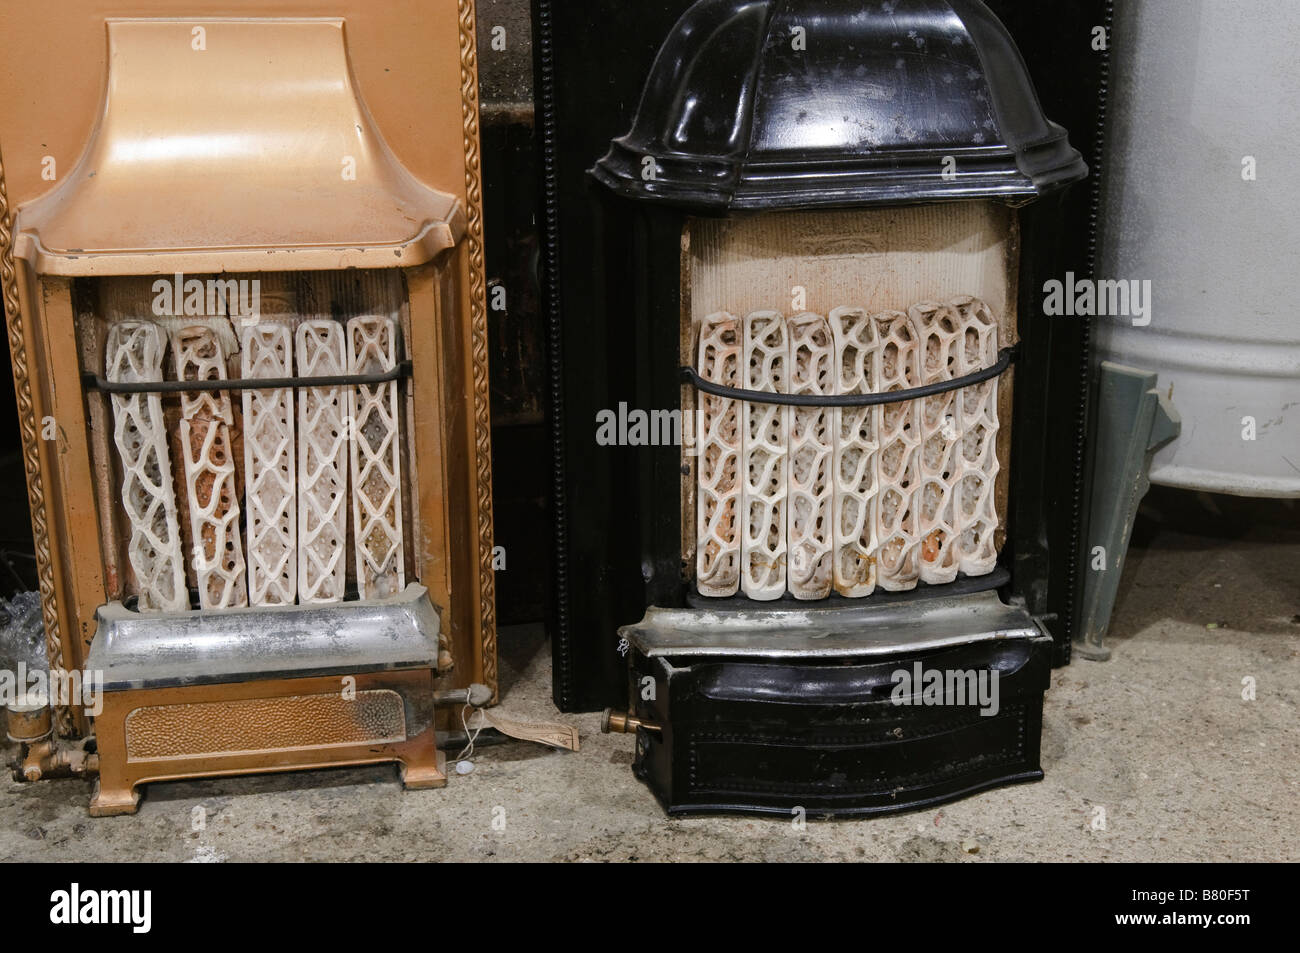 1920s 1930s 1940s gas room heaters in a museum - Stock Image